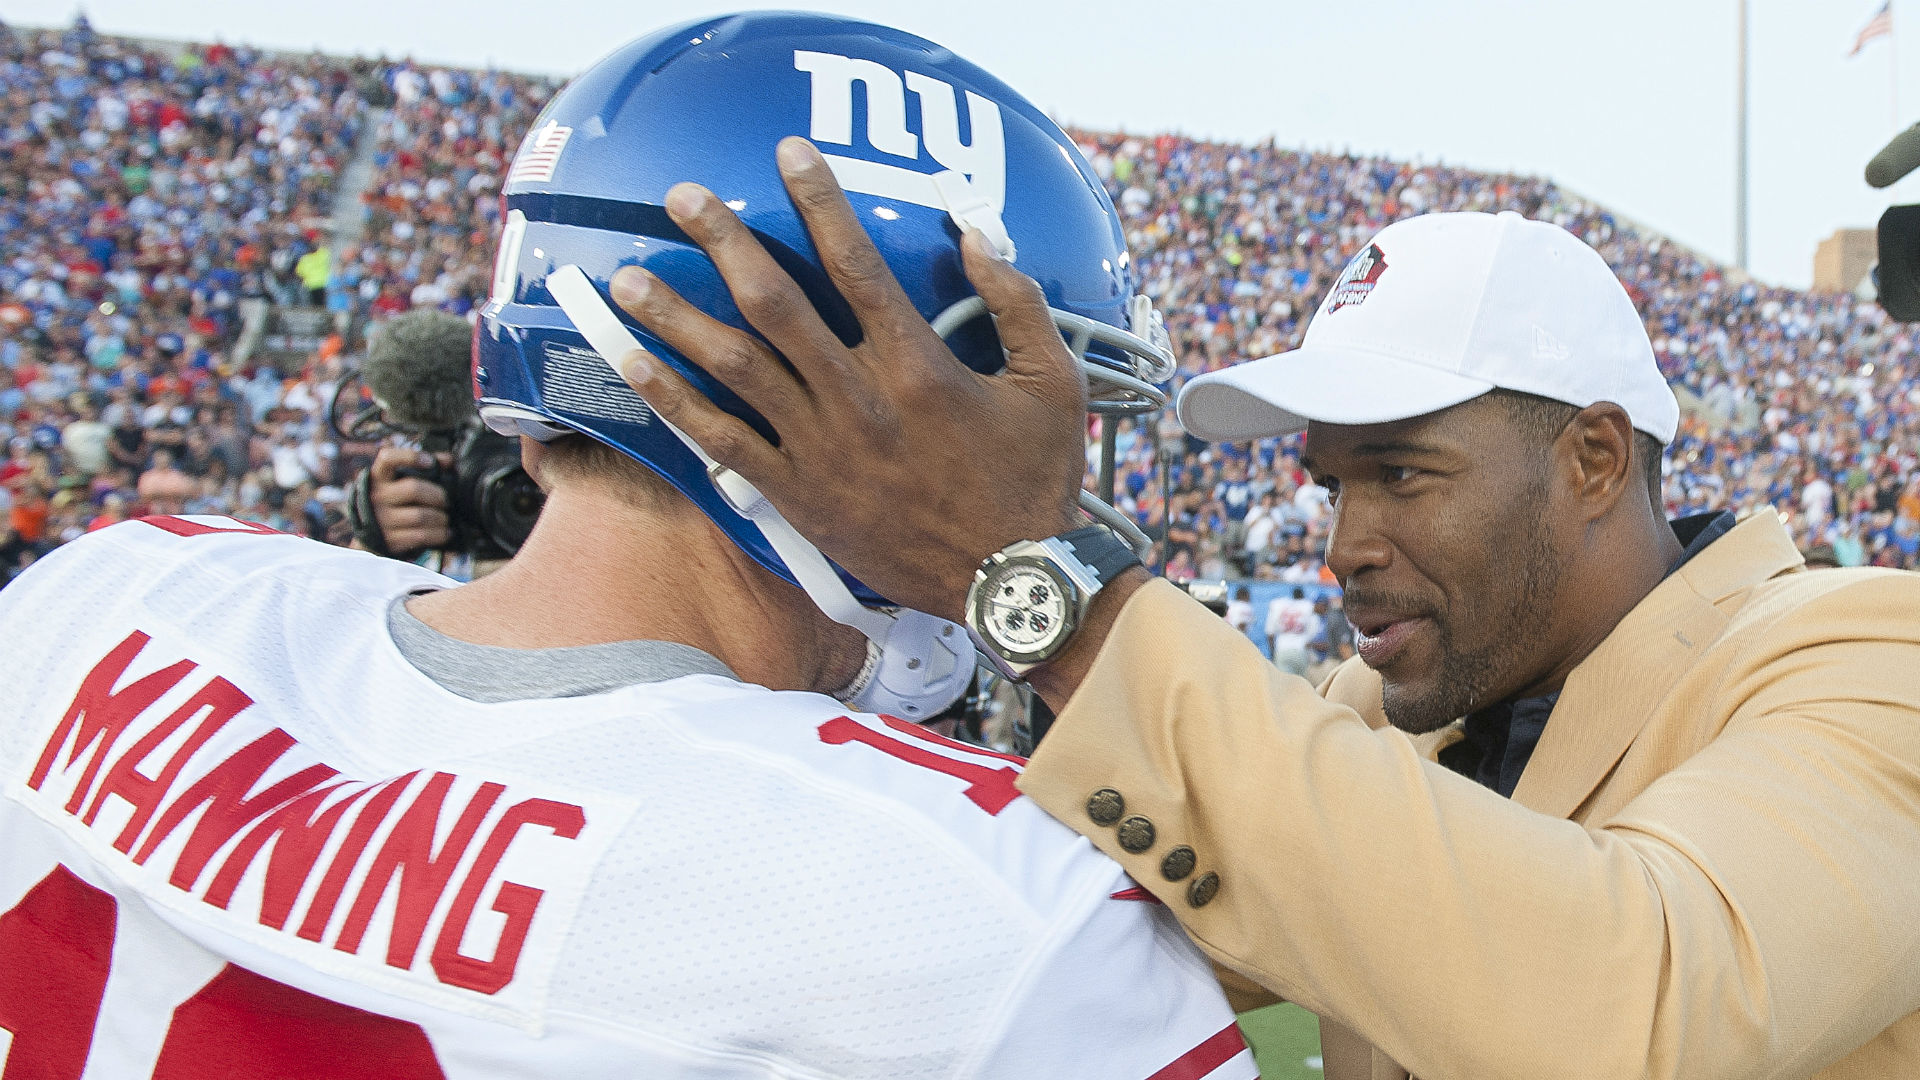 http://images.performgroup.com/di/library/omnisport/70/96/eli-manning-and-michael-strahan_1u5thyw1fh3lx12uf2b8t14utm.jpg